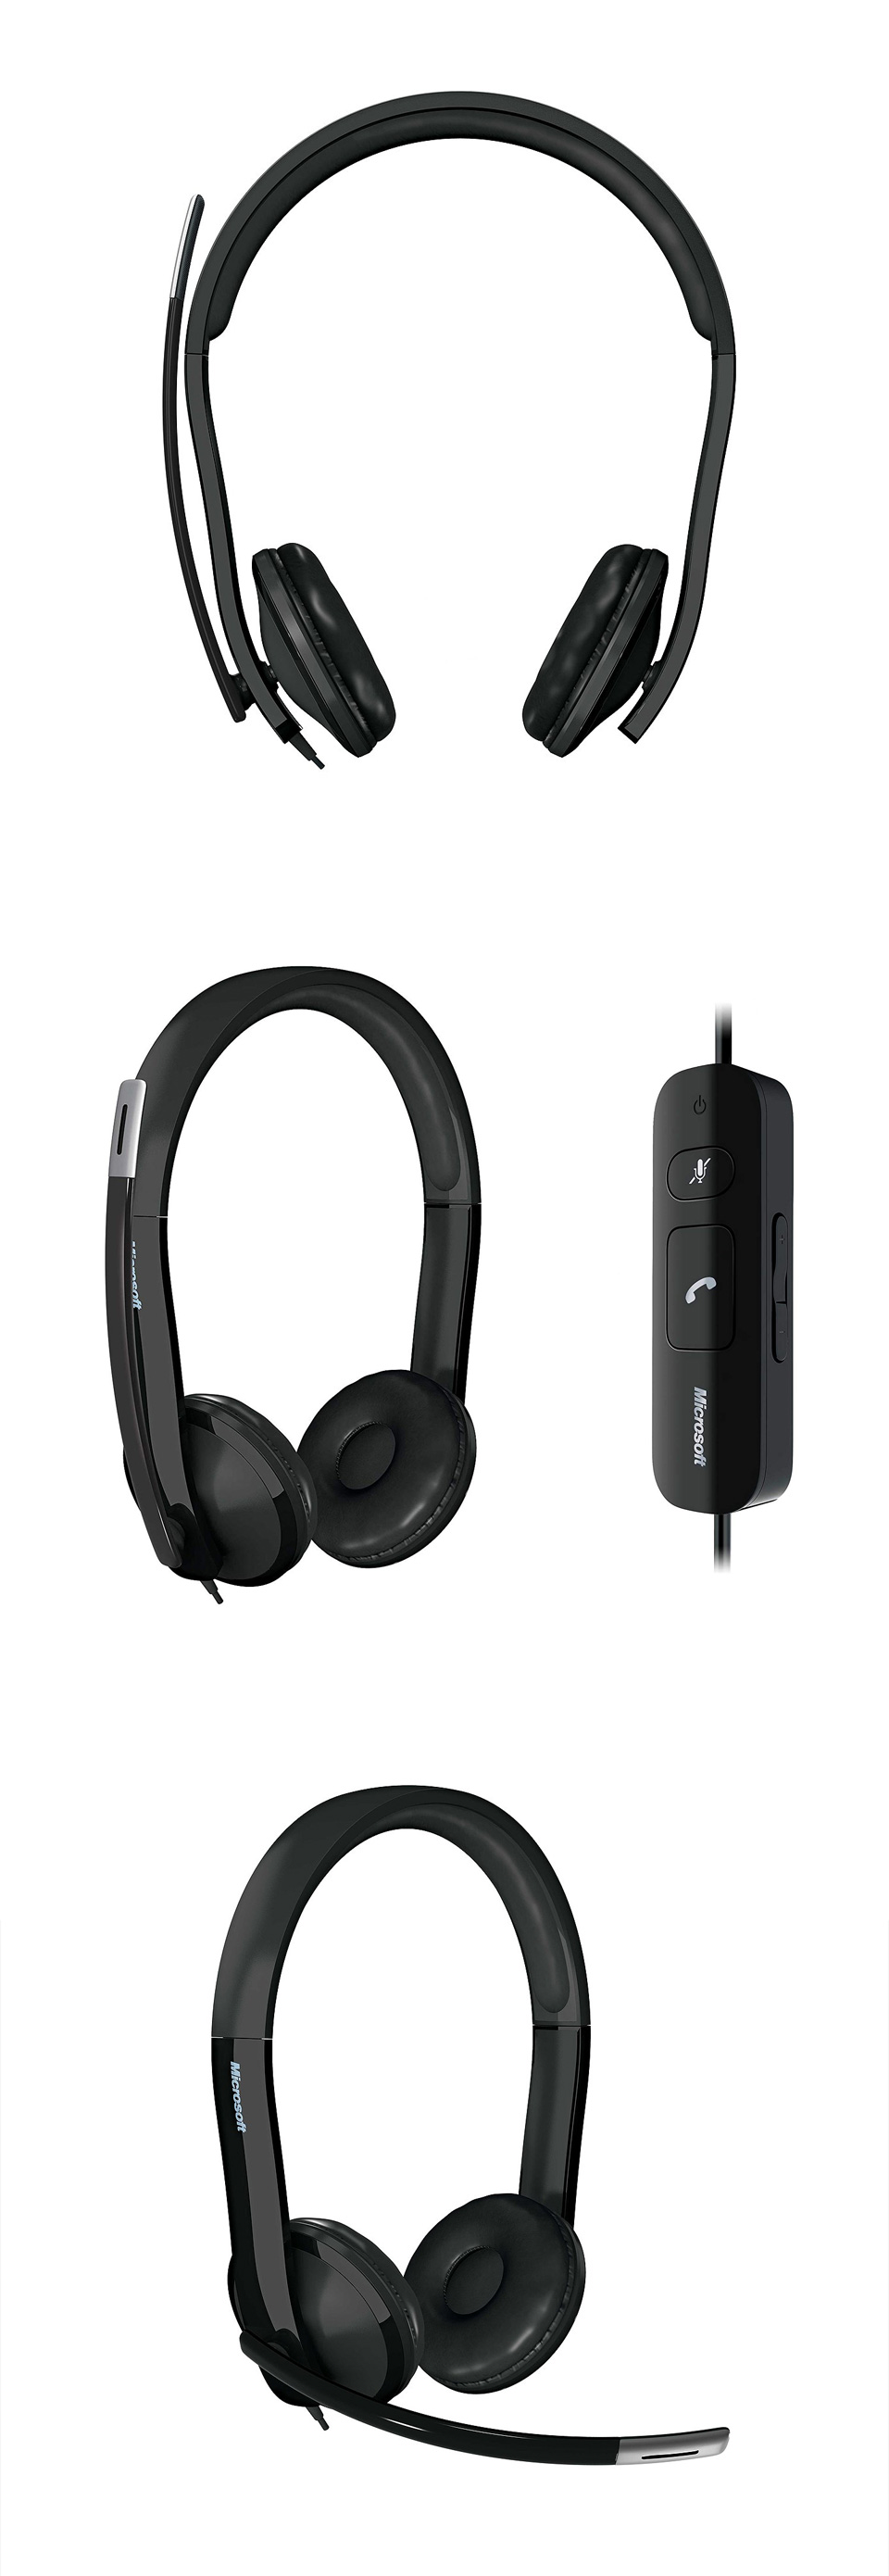 Microsoft LifeChat LX-6000 Headset product